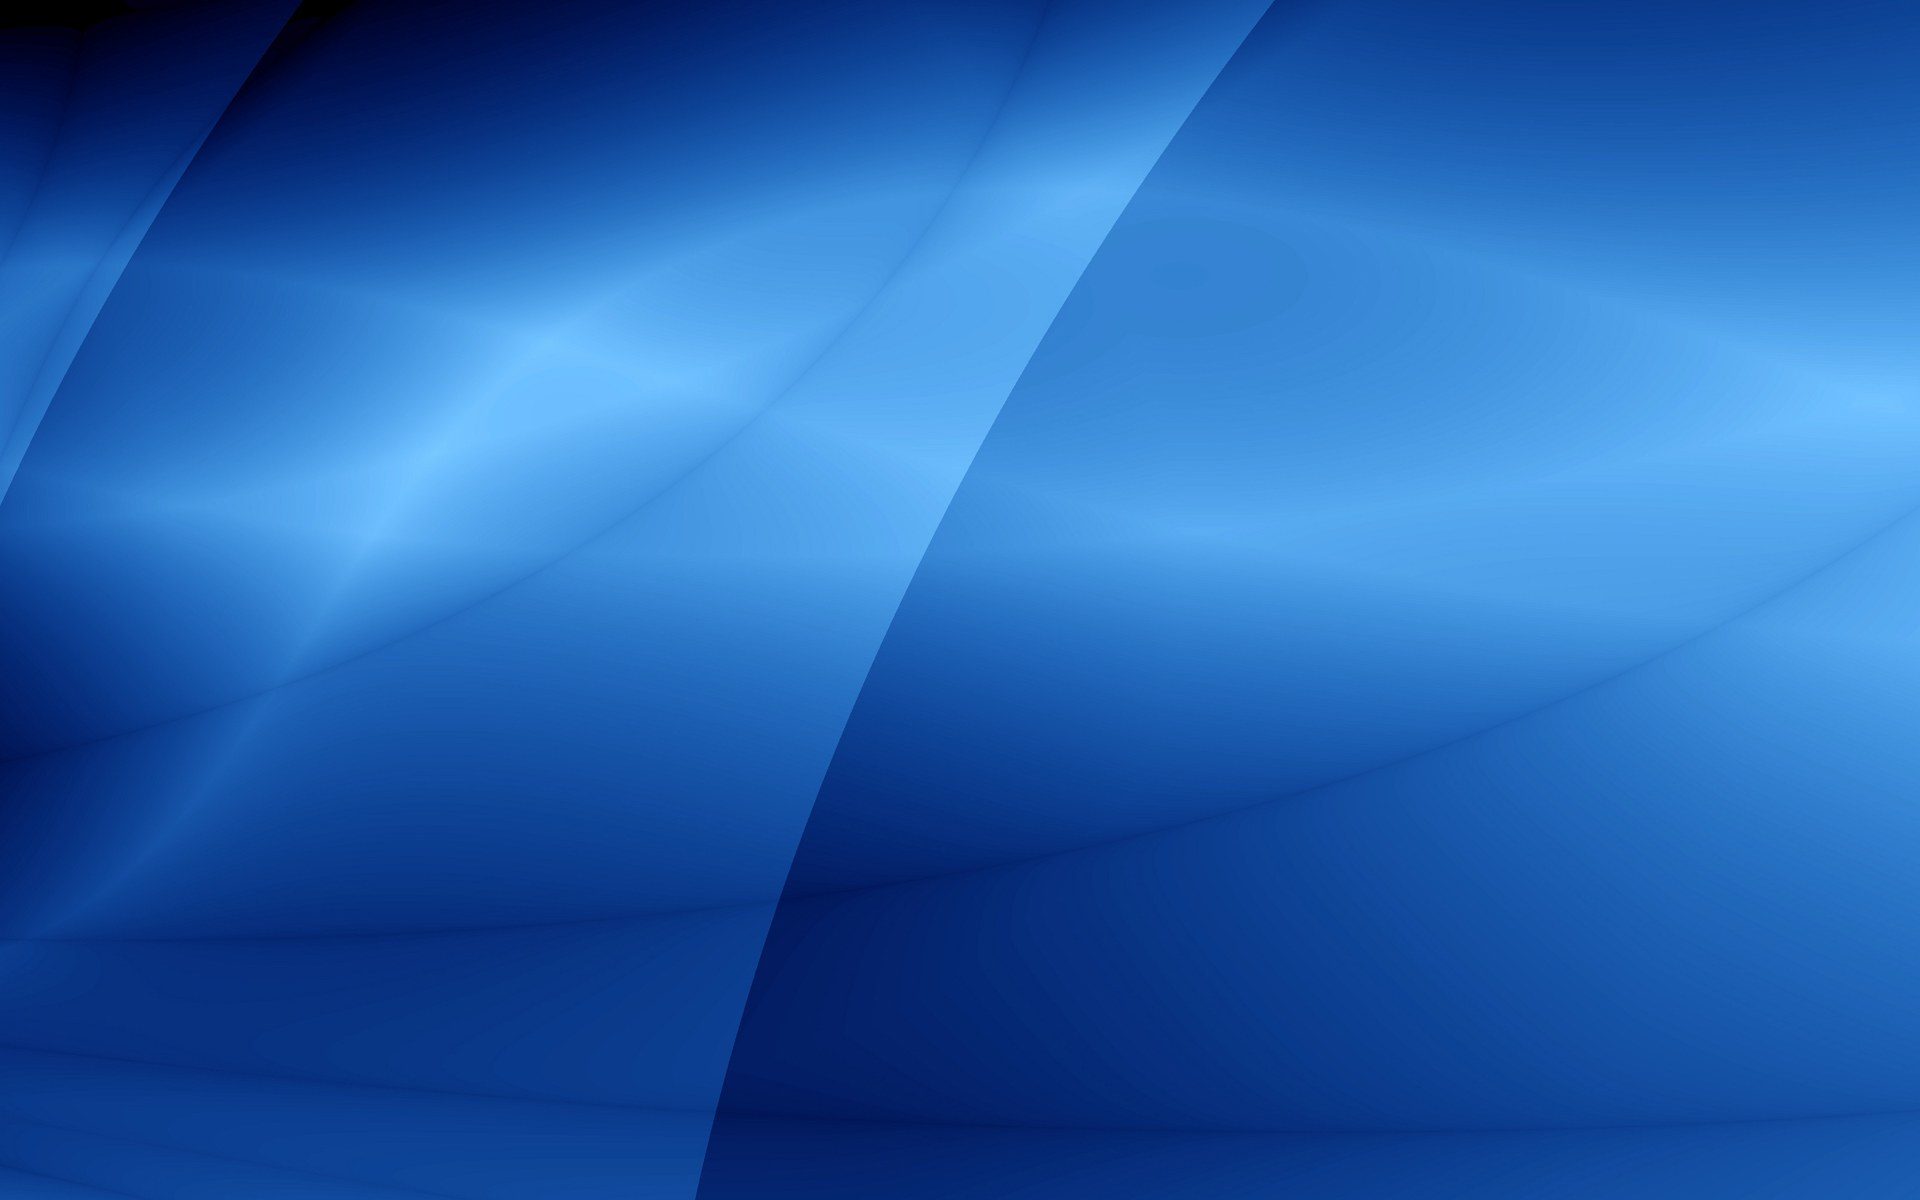 Blue Abstract Wallpaper Image HD